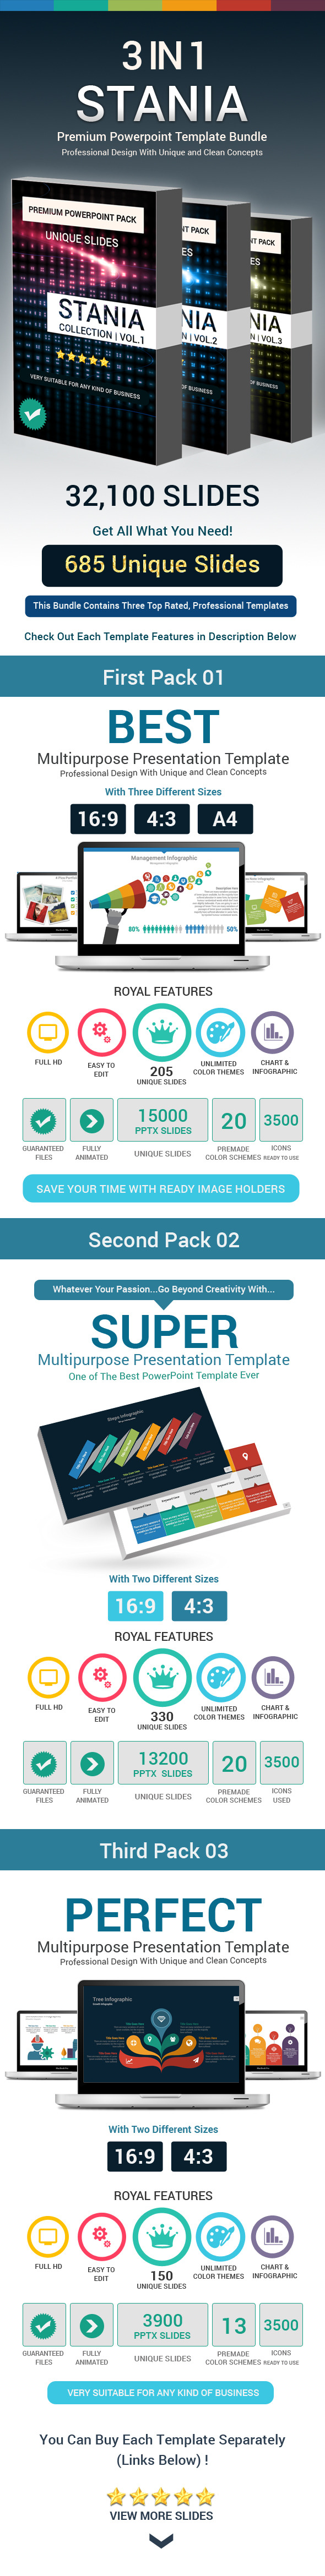 3 Stania Powerpoint Template Bundle - Business PowerPoint Templates